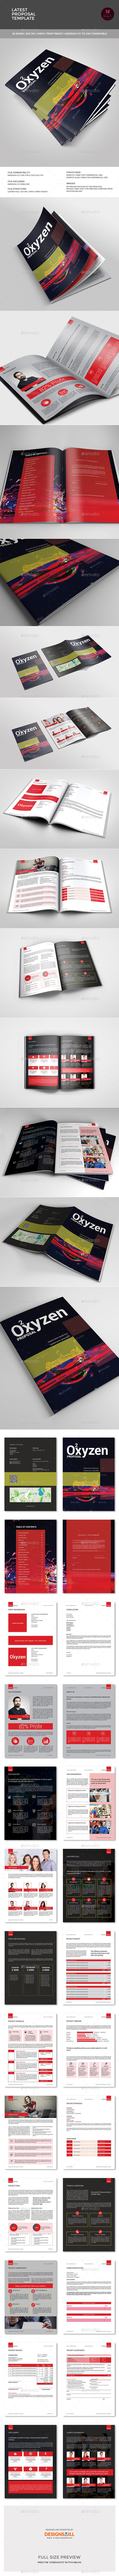 GraphicRiver Oxygen Proposal Template 11180181